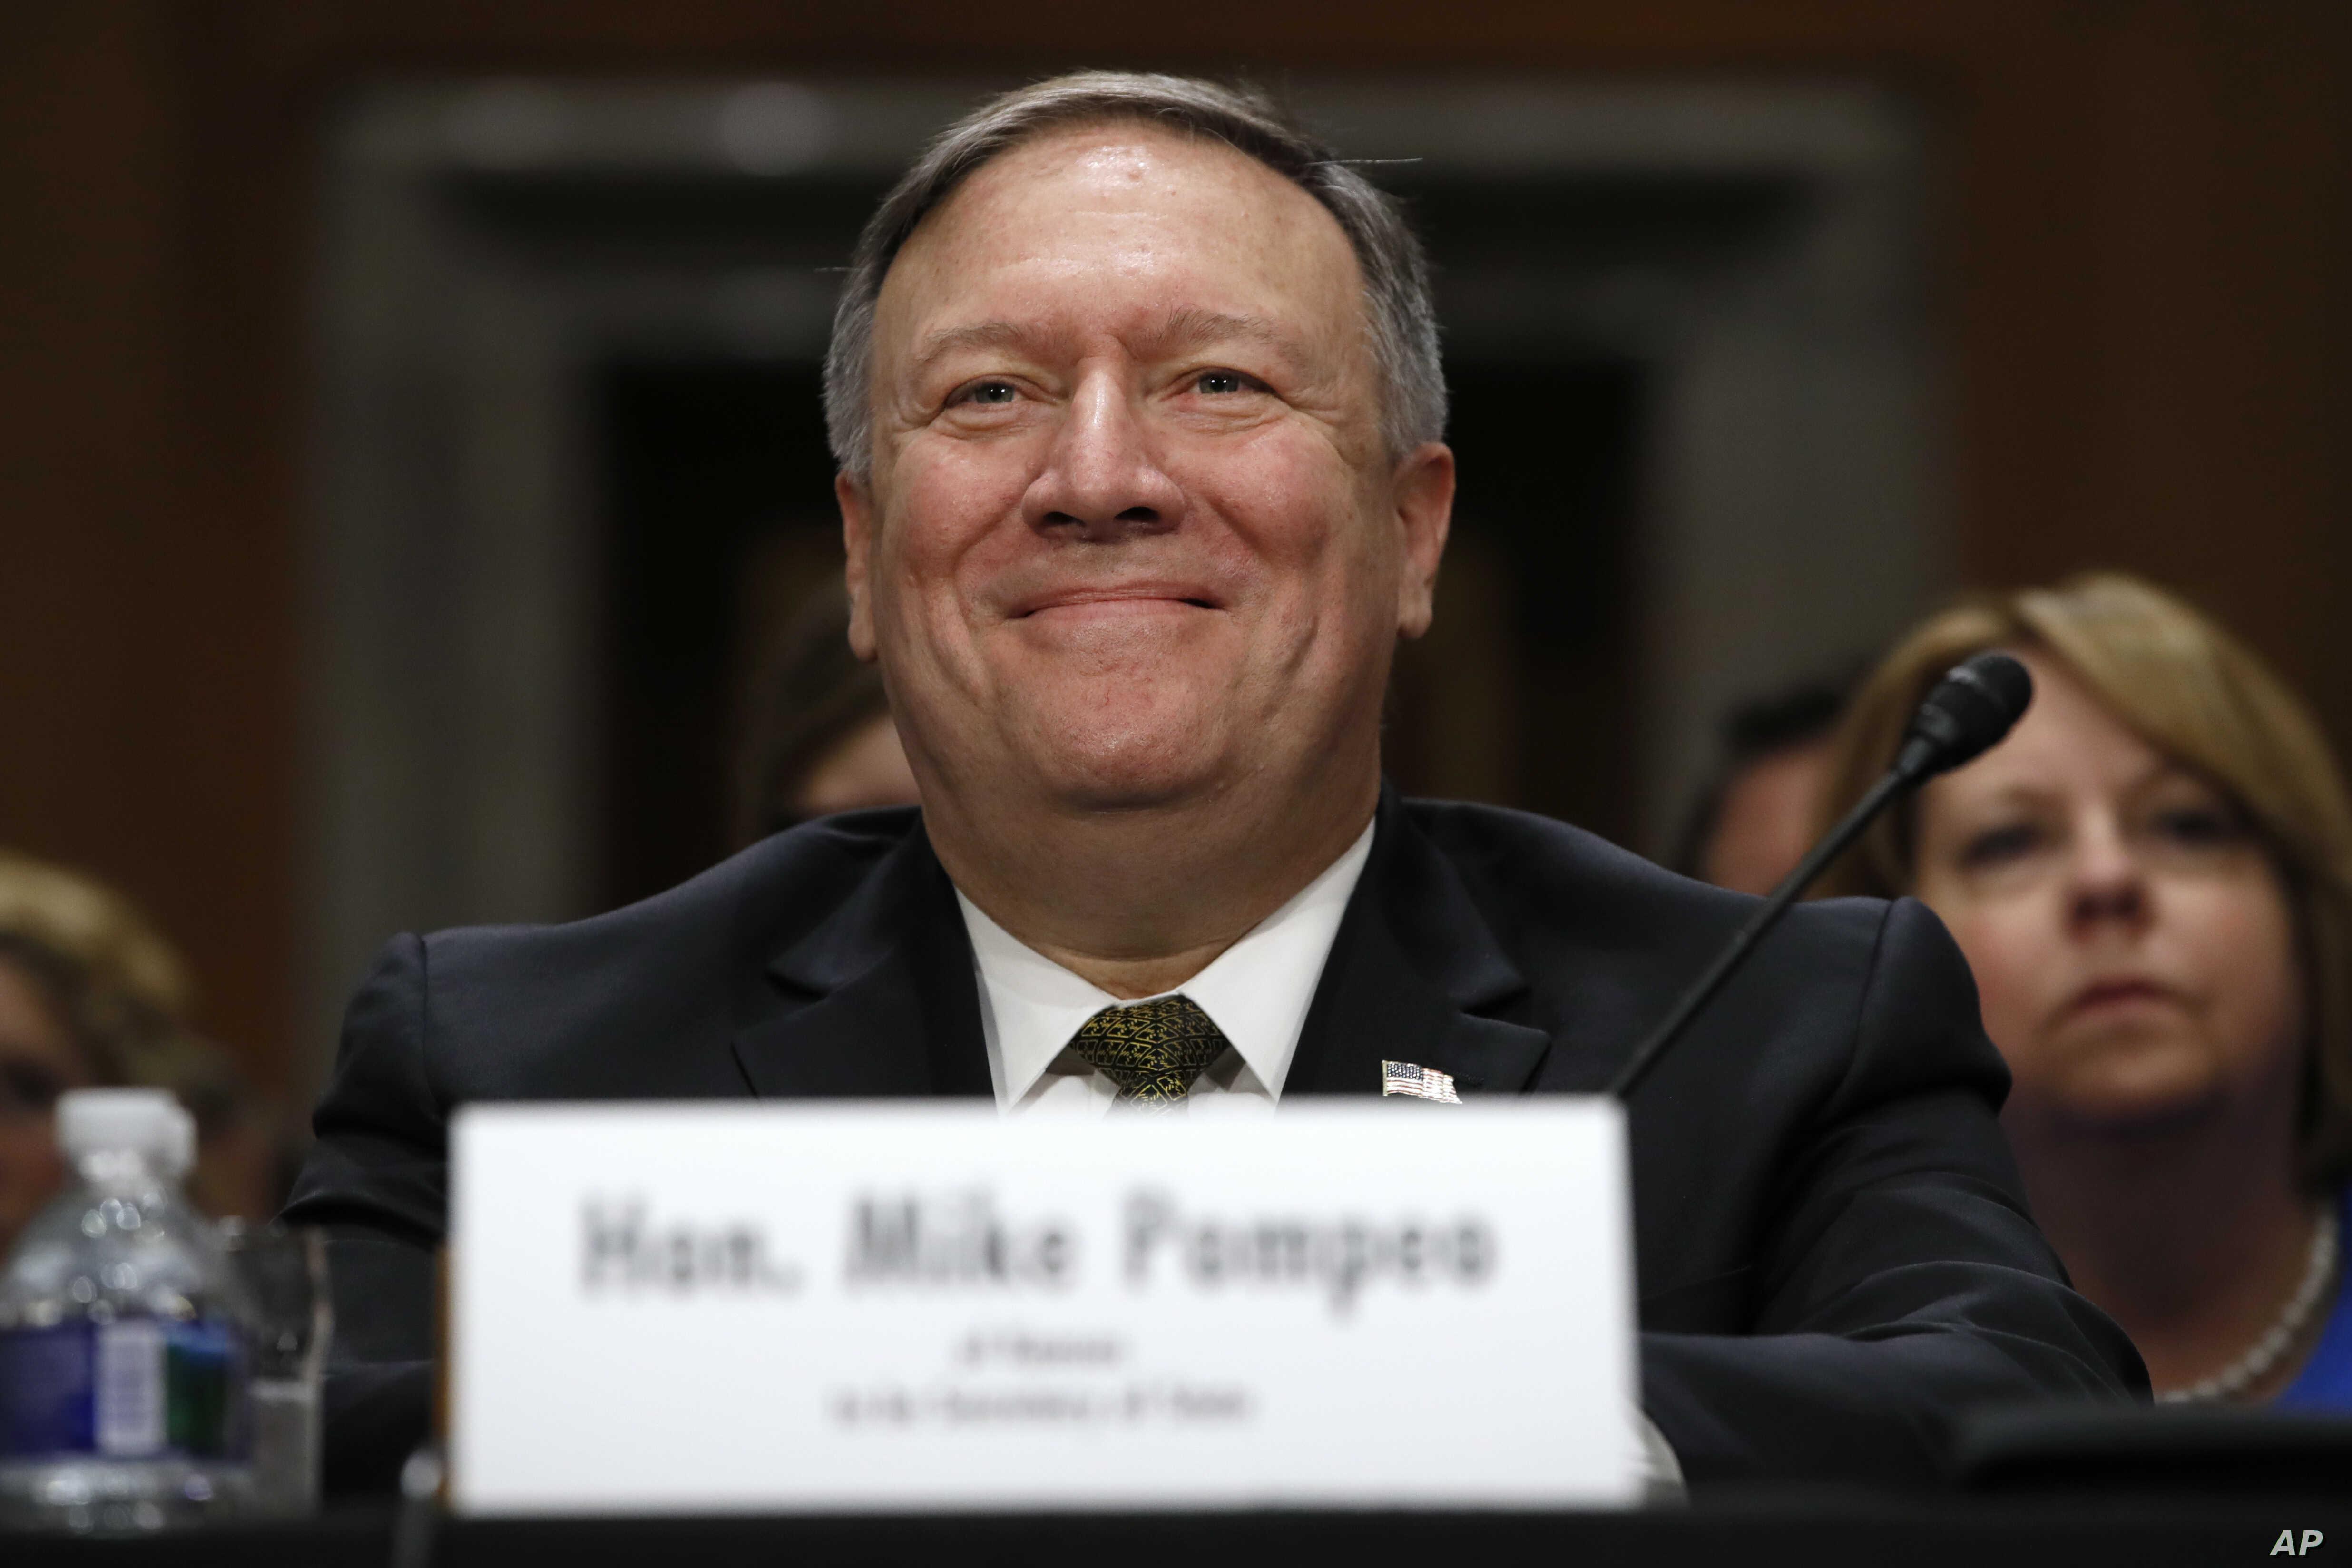 CIA Director Mike Pompeo, picked to be the next secretary of state, smiles after his introductions before the Senate Foreign Relations Committee during a confirmation hearing on his nomination to be Secretary of State, Thursday, April 12, 2018 on Cap